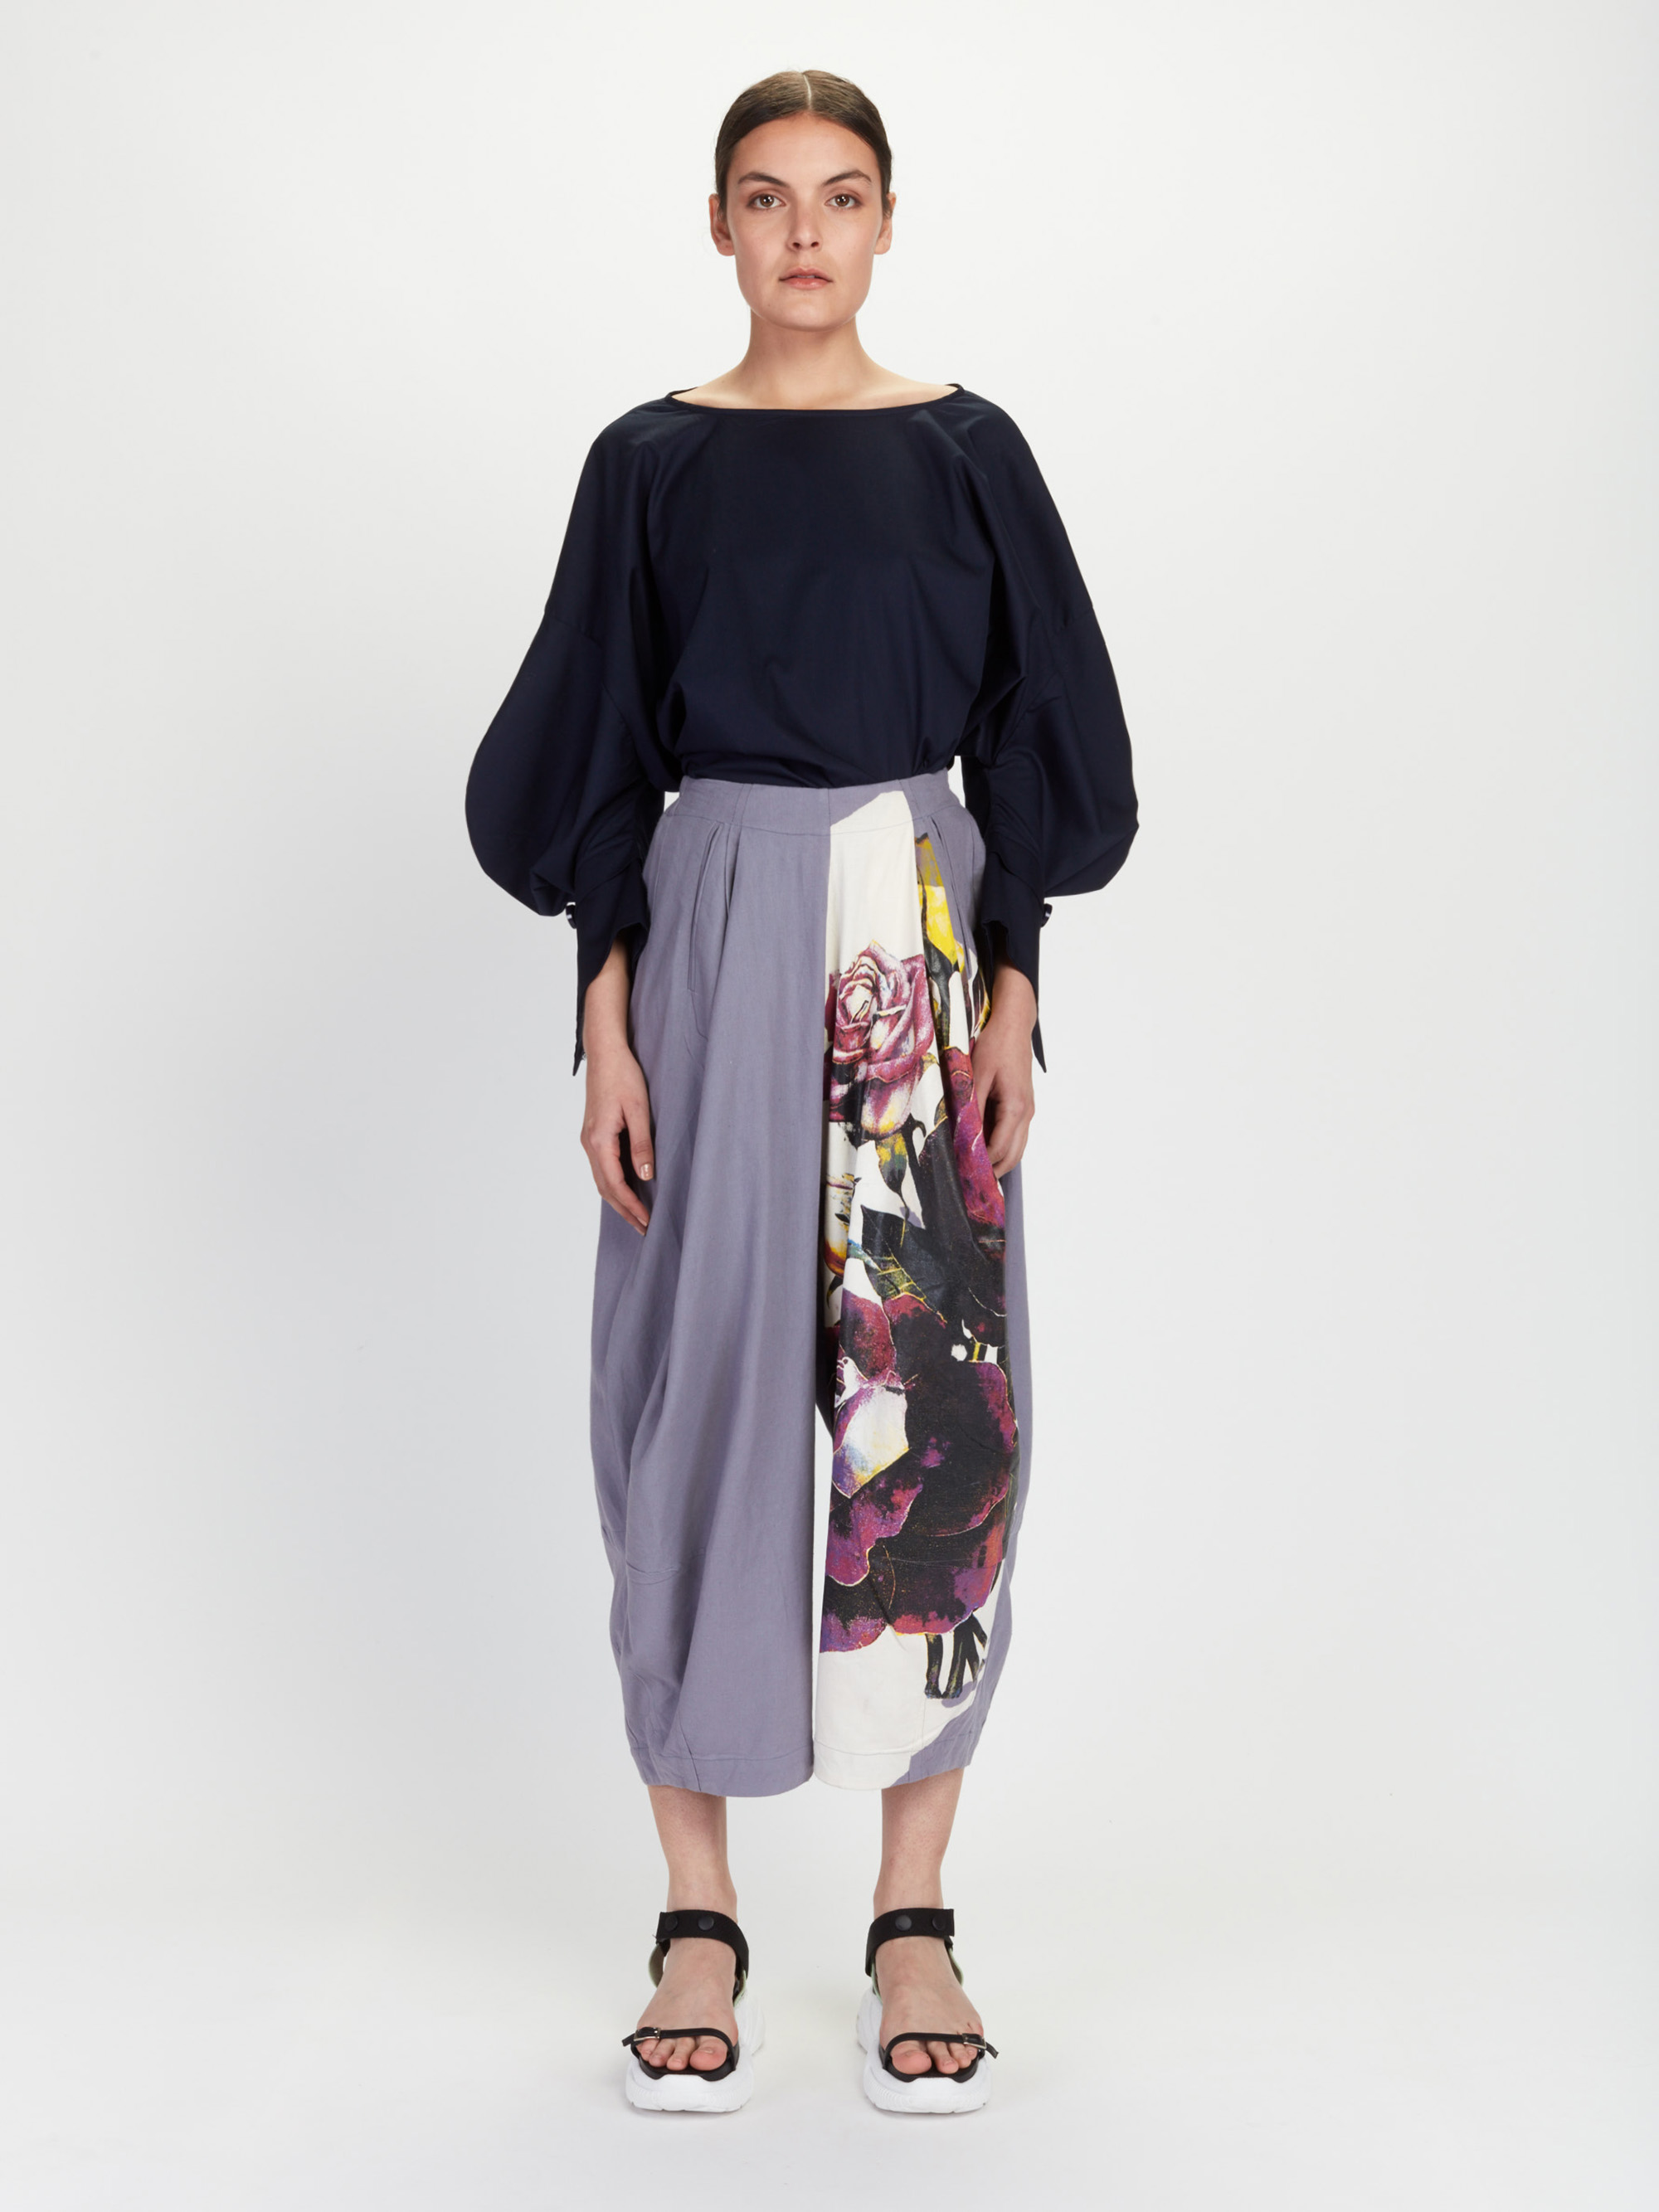 jt_zappa-printed-pant_29-26-2018__picture-1280